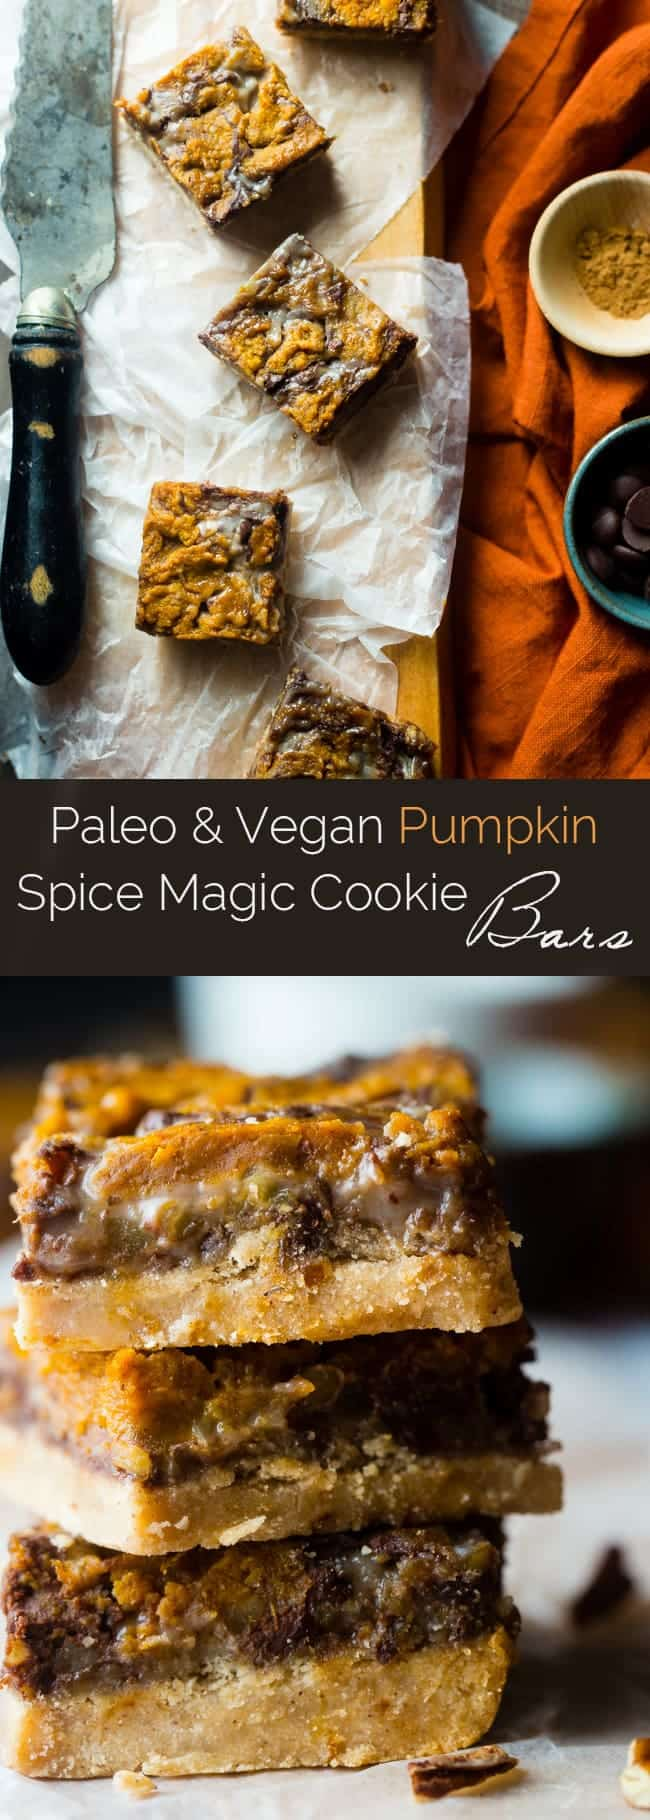 Vegan Pumpkin Spice Paleo Magic Cookie Bars - A healthier, dairy and ...